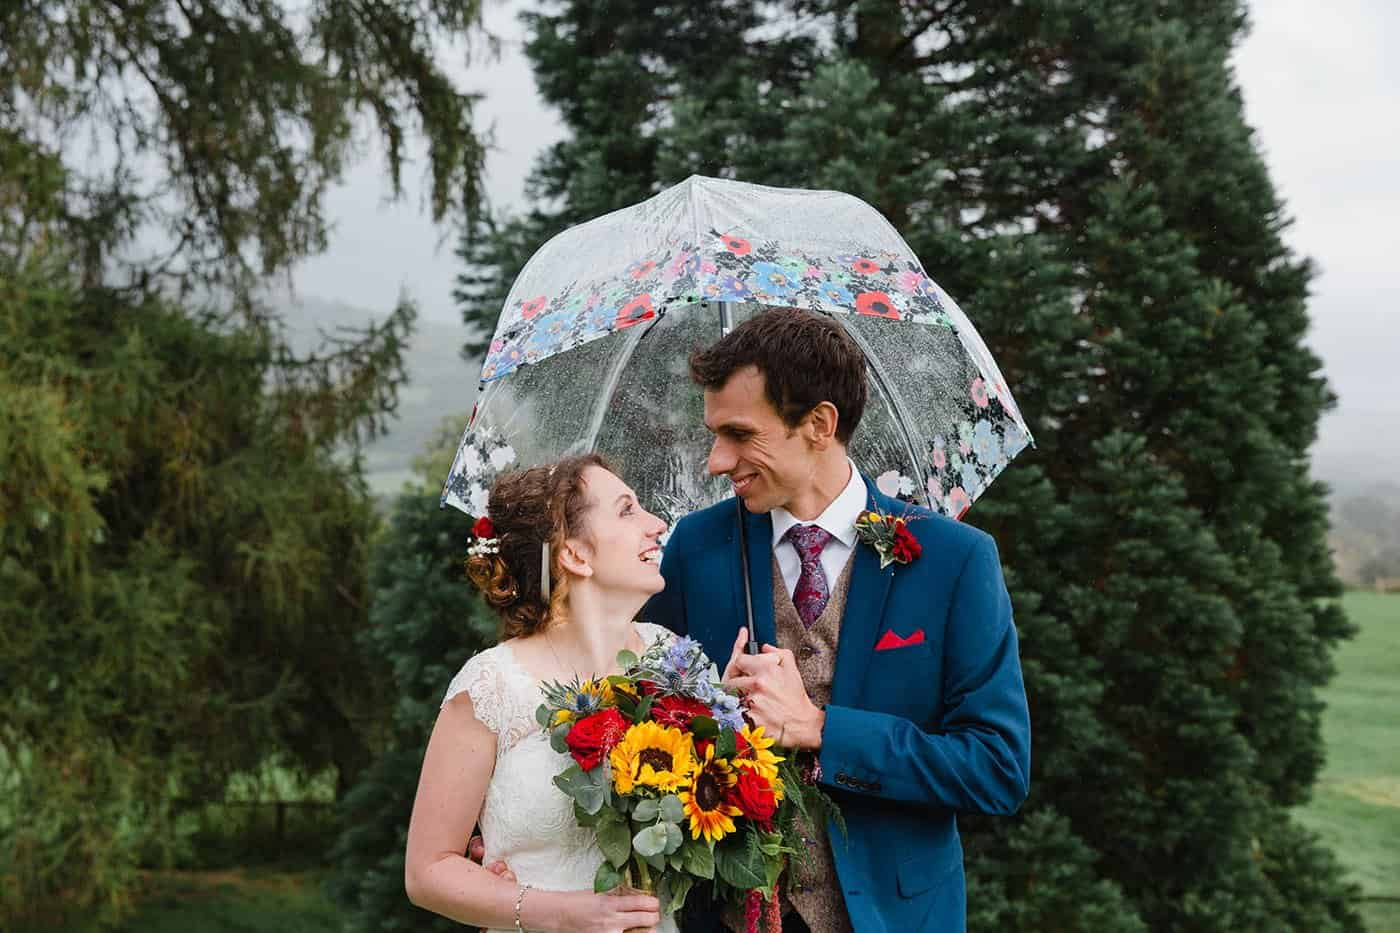 bride and groom under an umbrella laughing